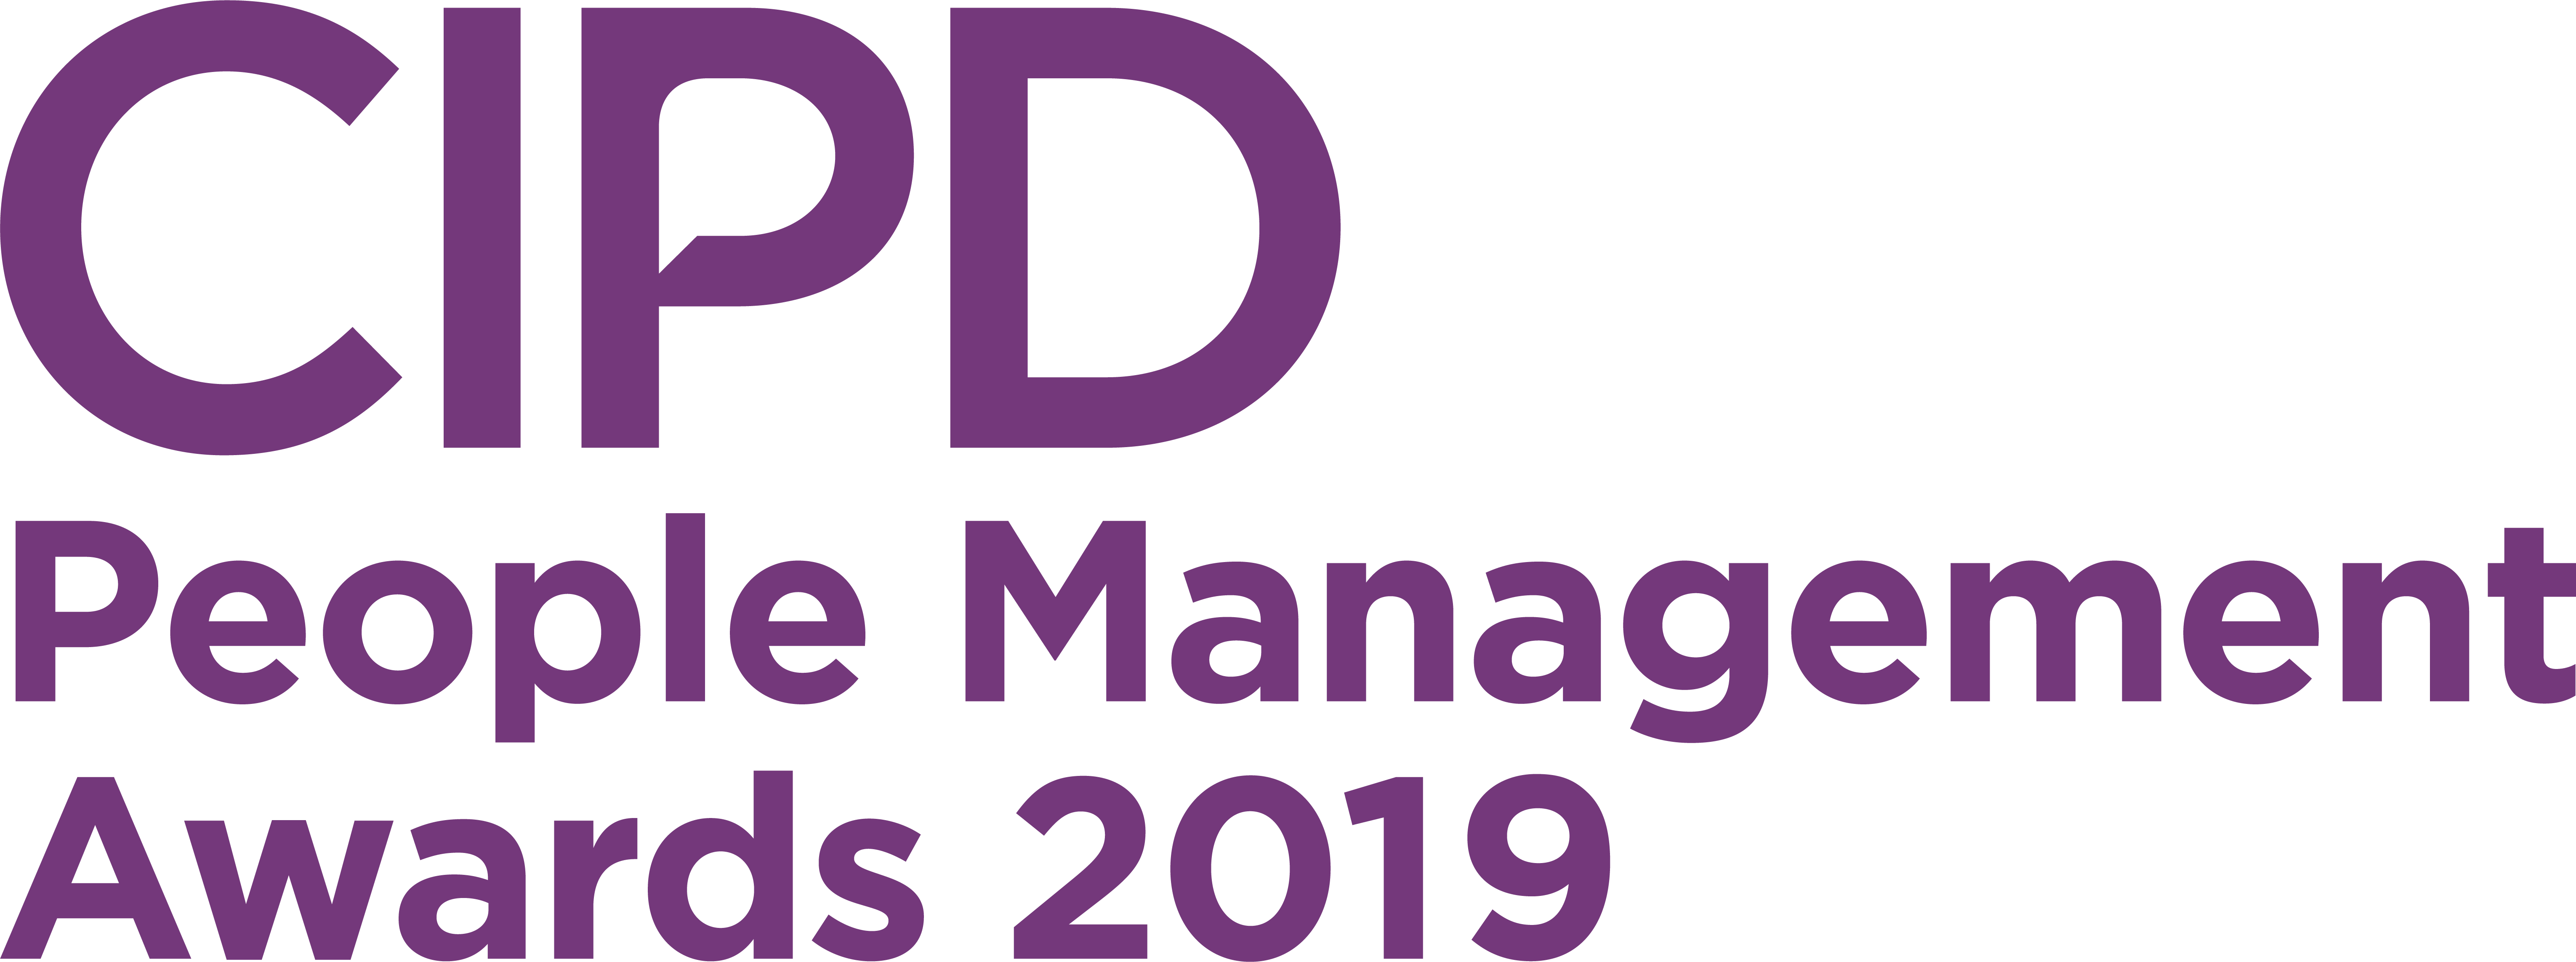 CIPD People Management Awards